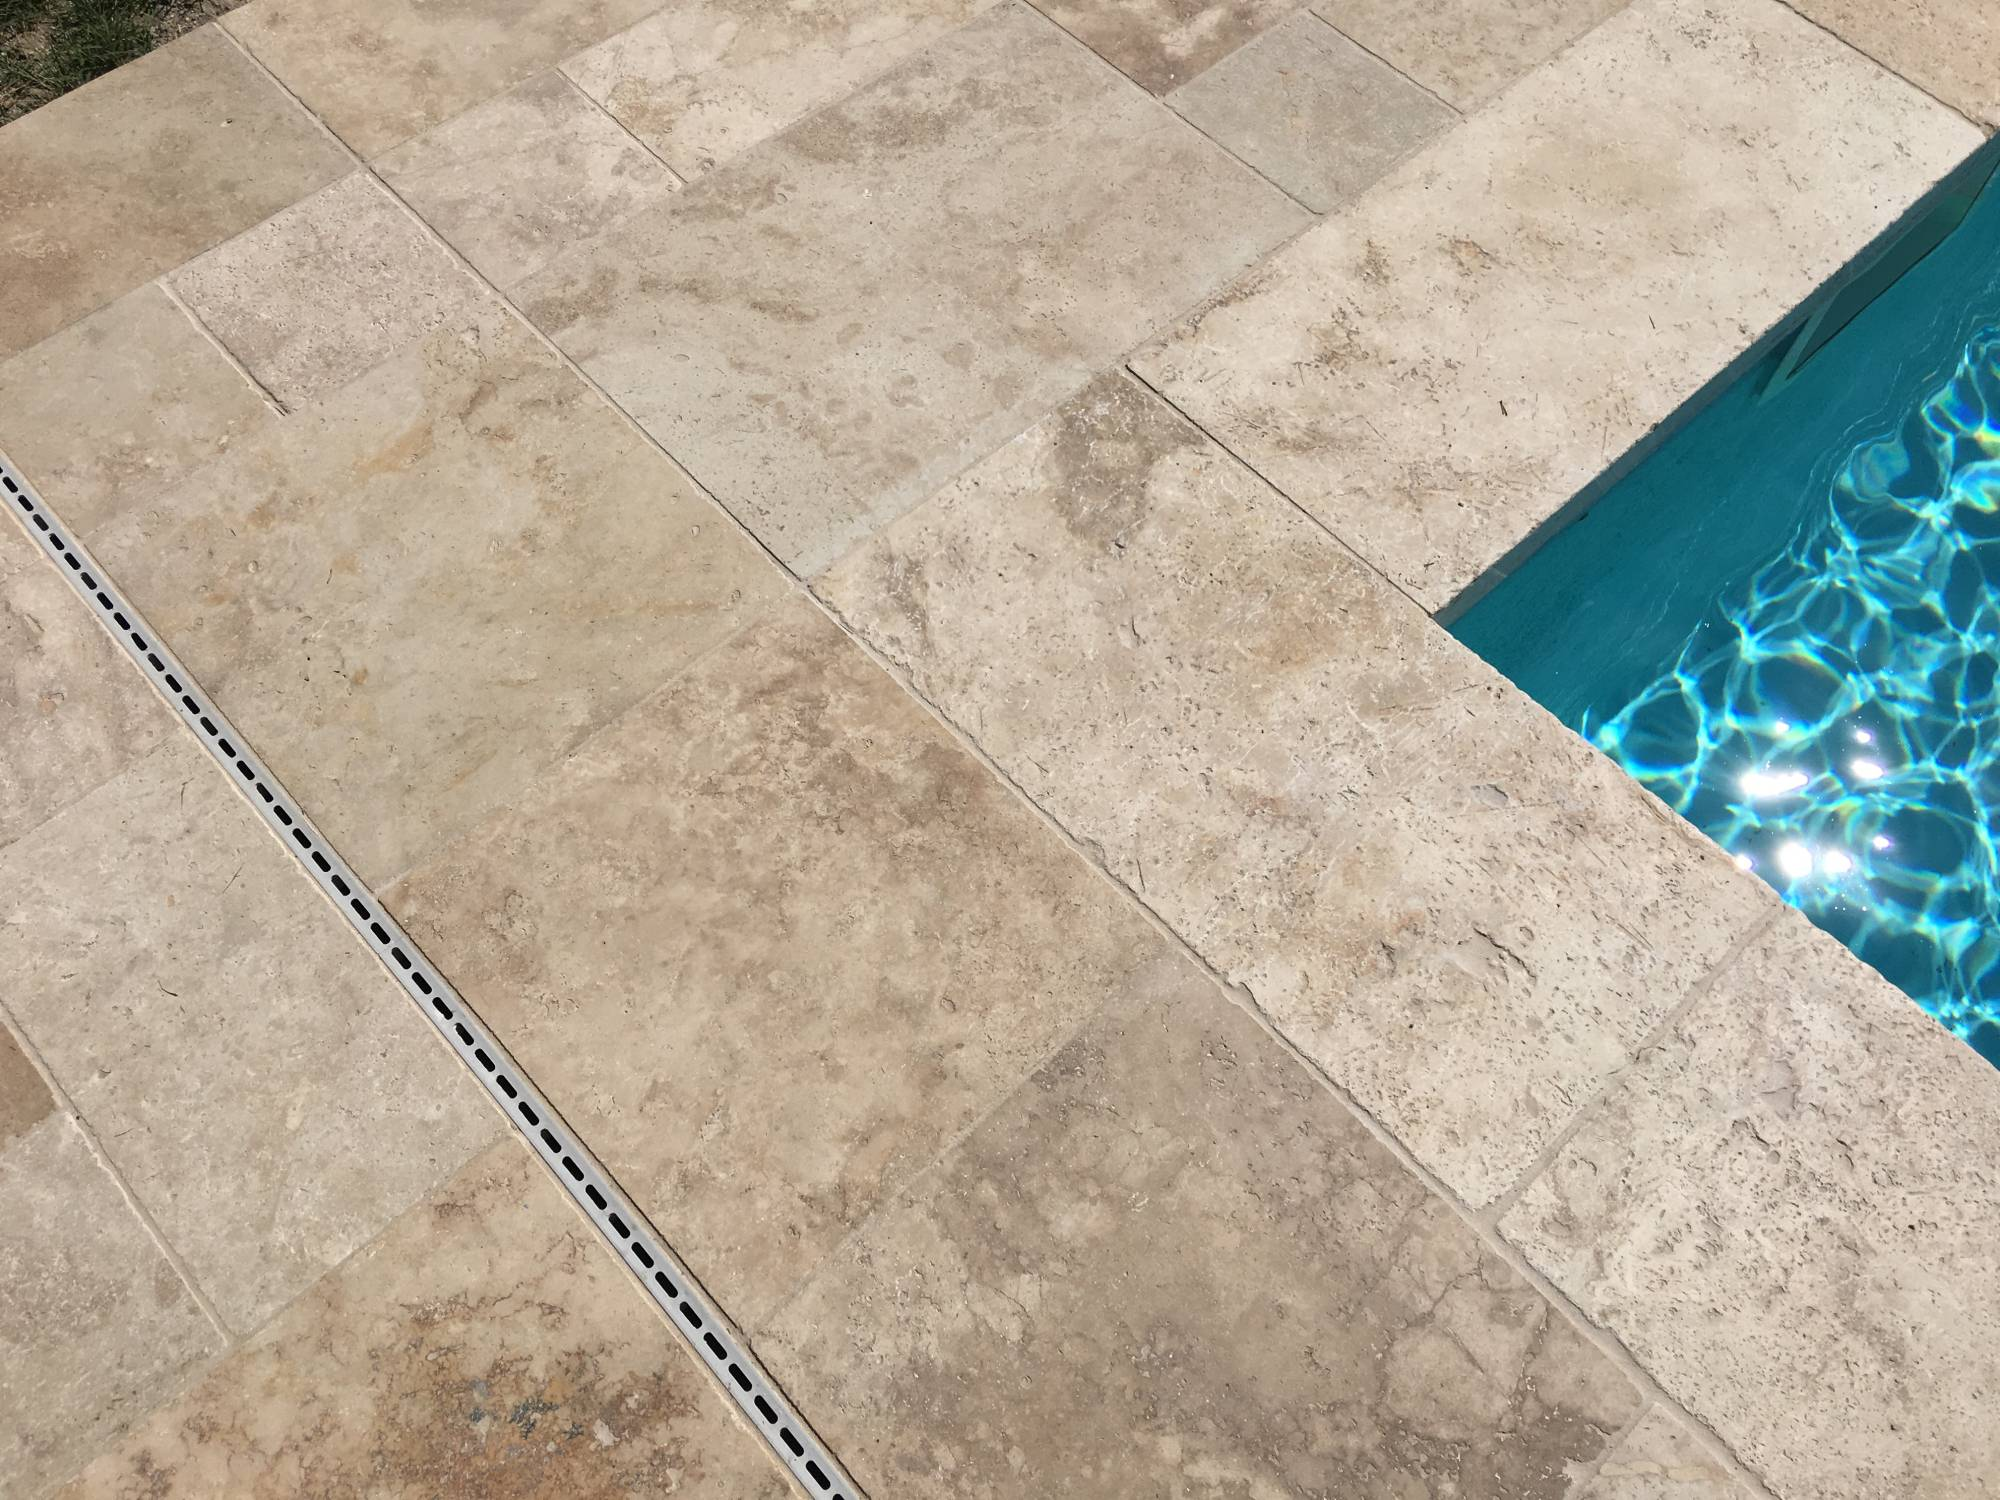 Piscine en travertin carrelage int rieur et ext rieur for Carrelage exterieur travertin